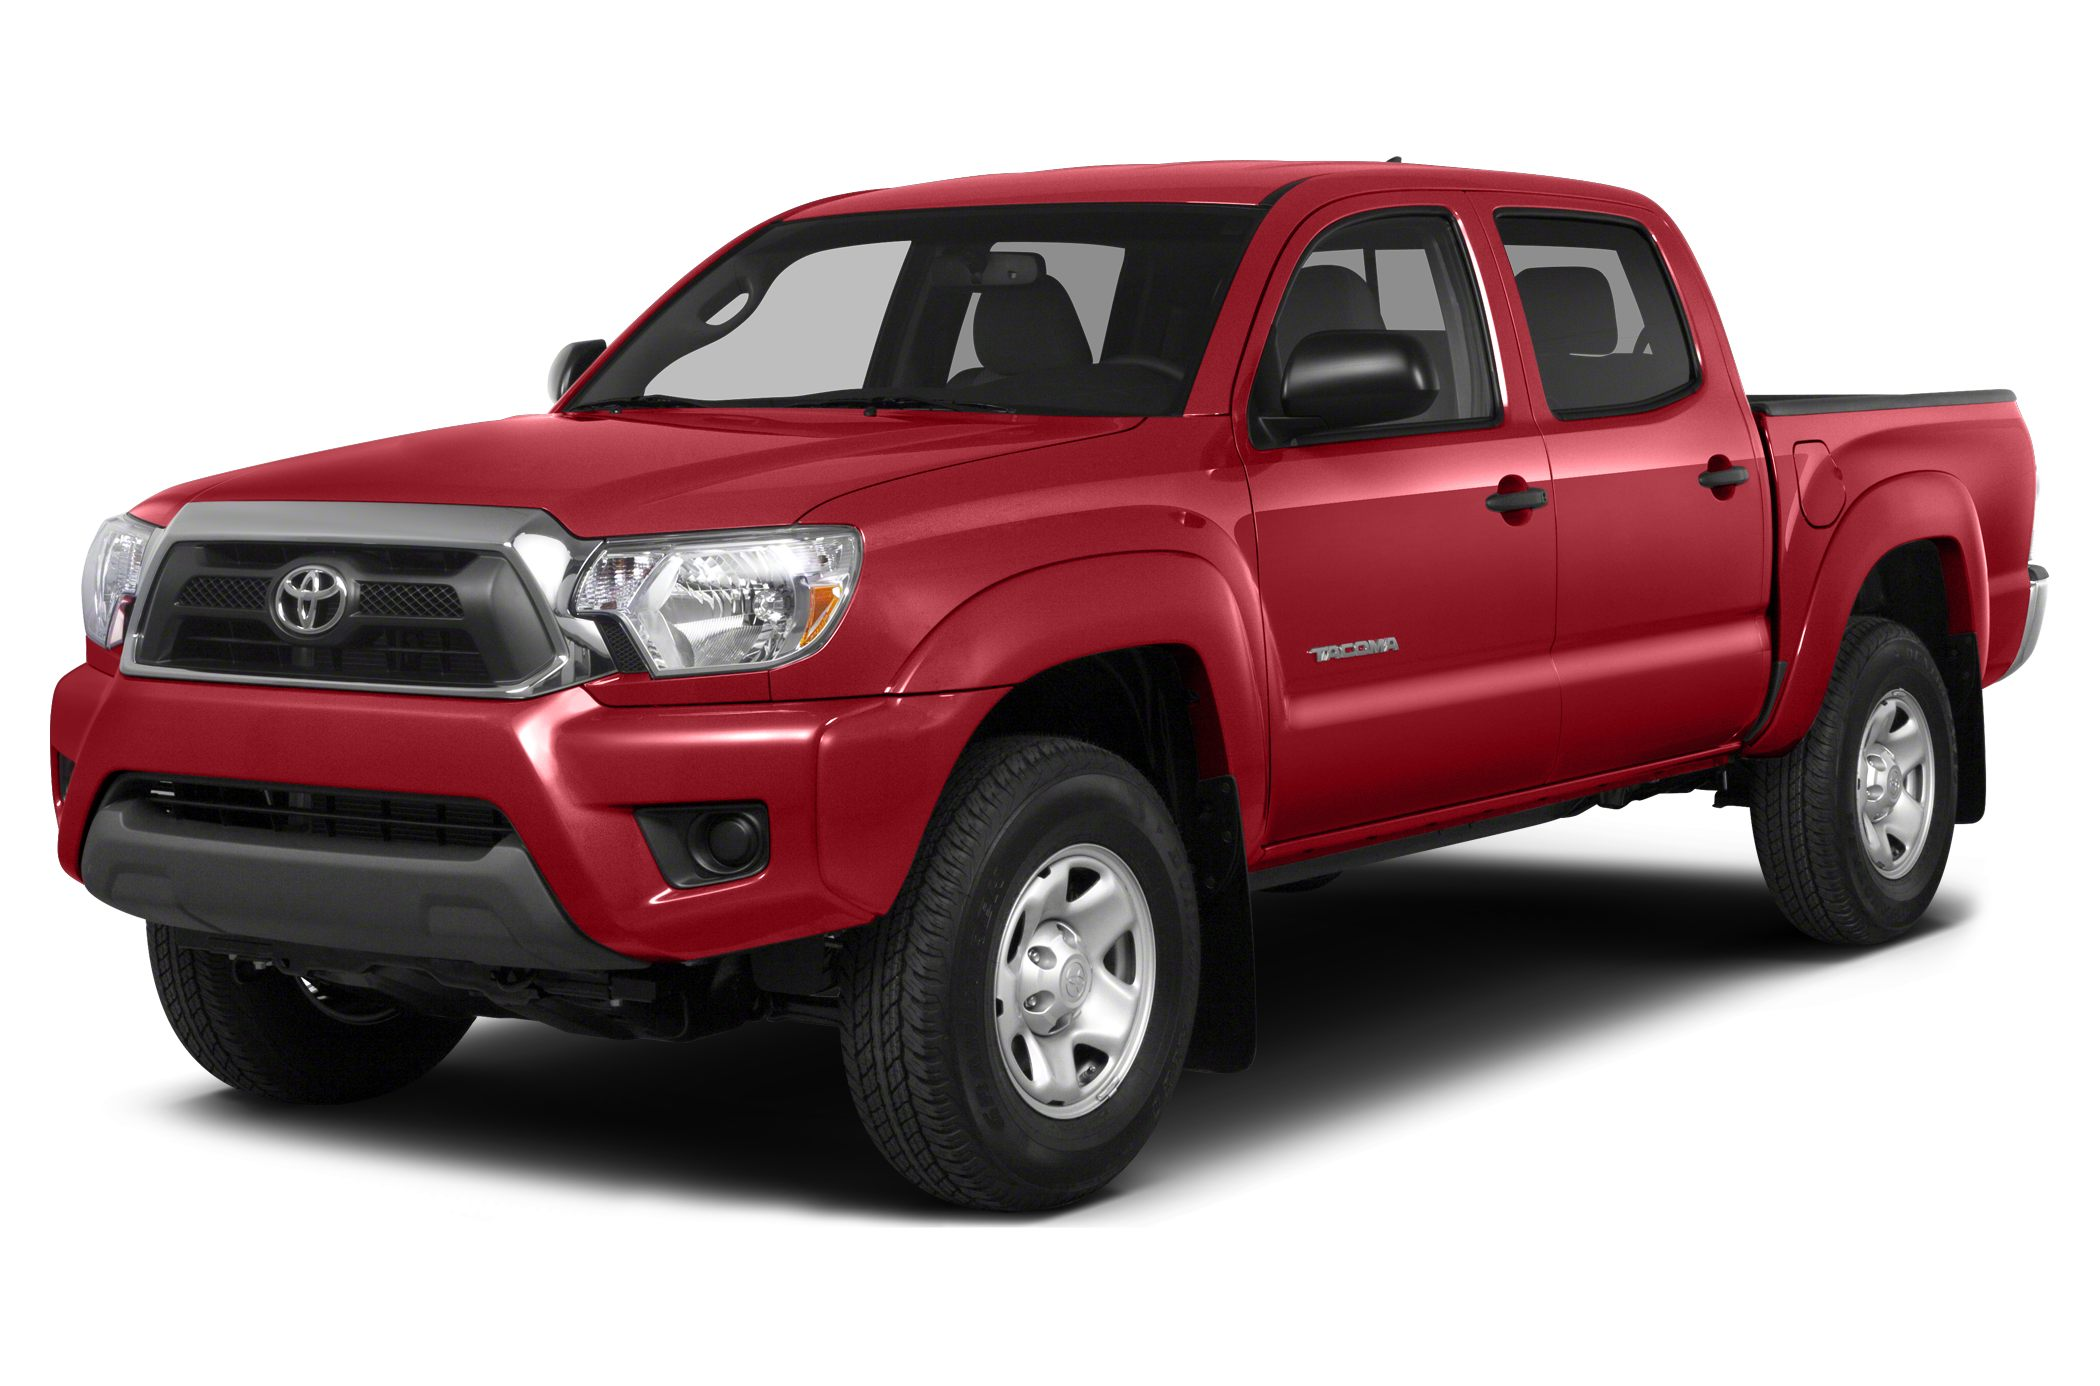 2015 Toyota Tacoma PreRunner Priced to sell at 843 below the market average This model has many